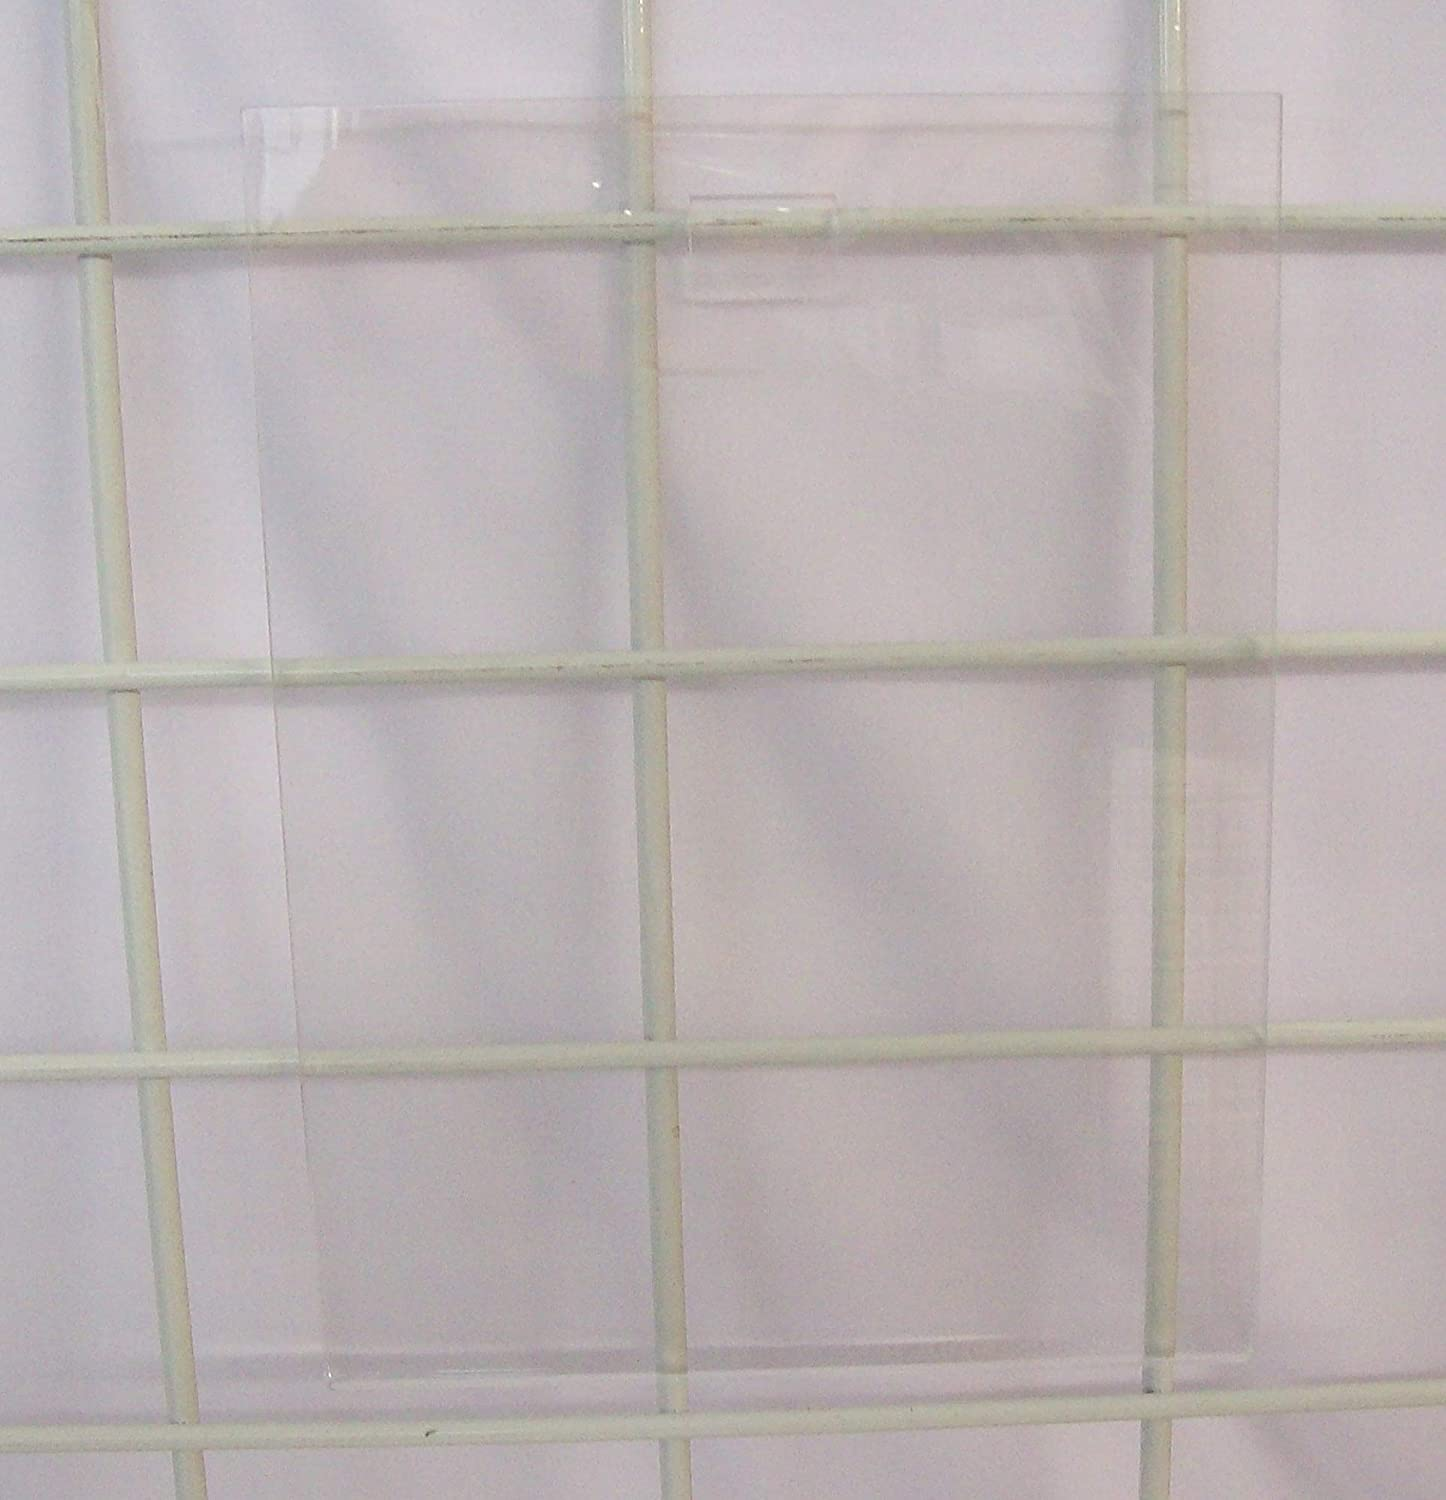 New Gridwall Clear Acrylic Sign Holder Vertical 11 Tall x 8.5 Wide